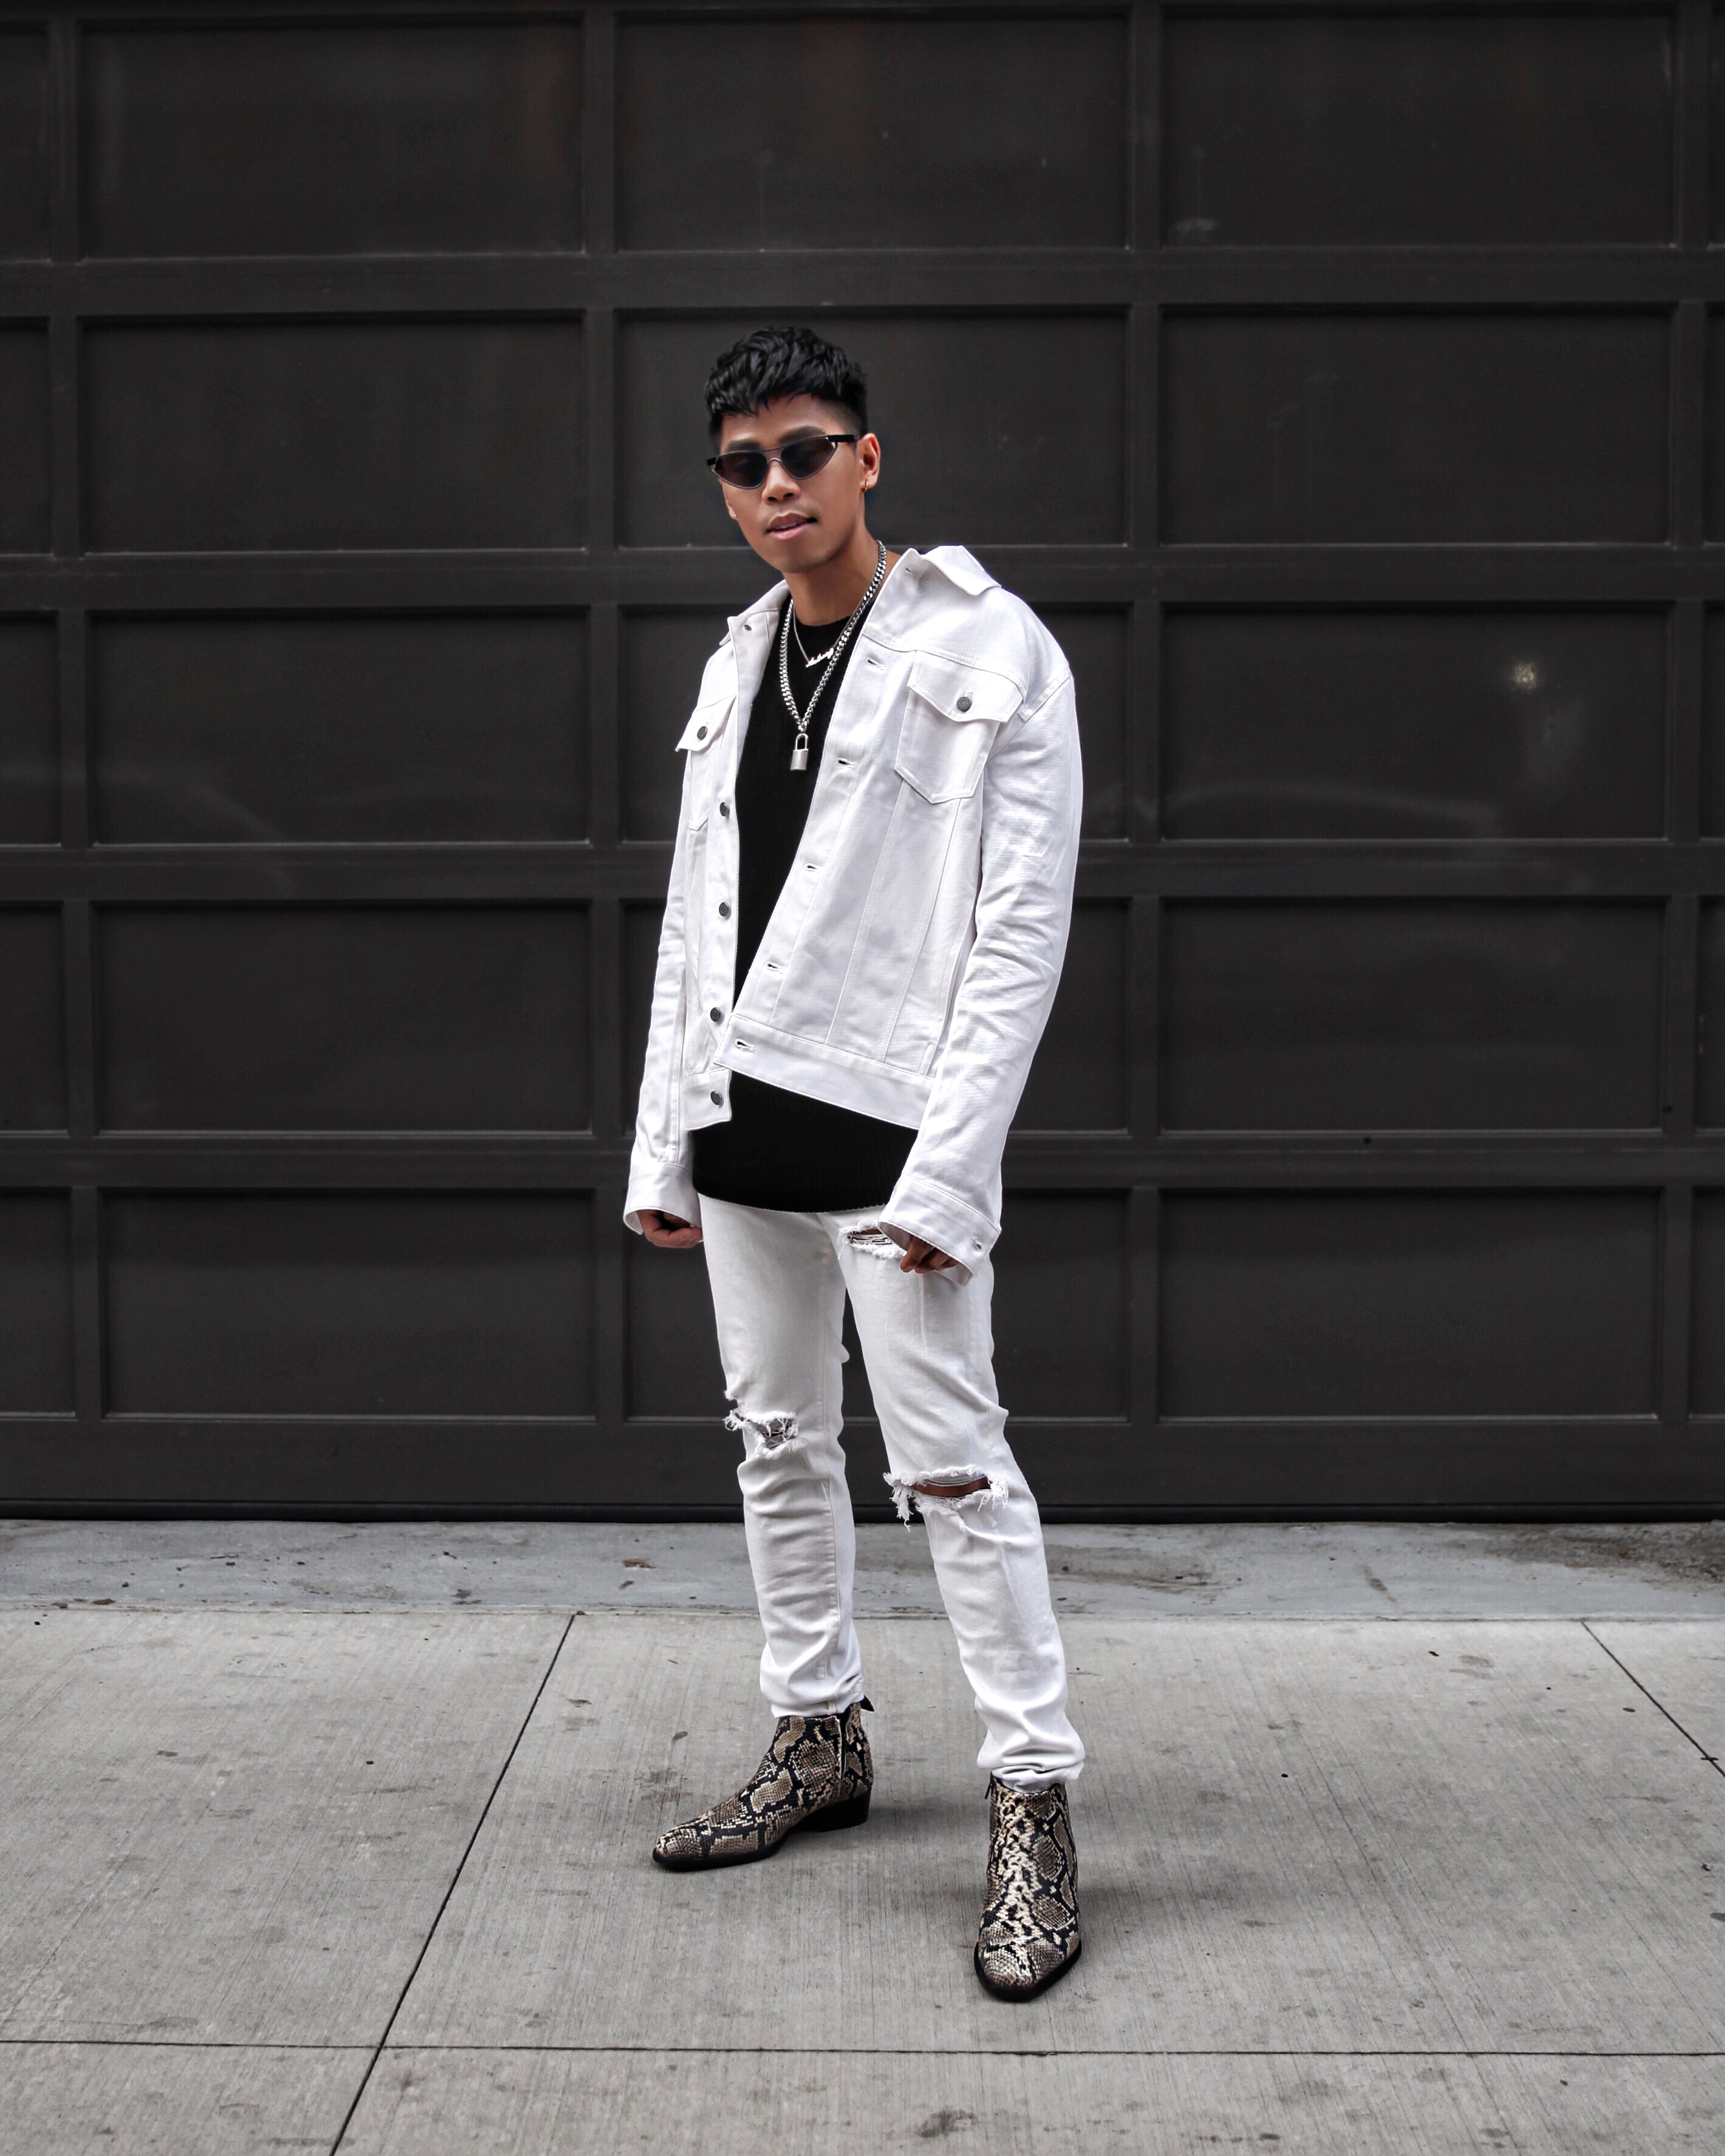 a6850c7ce061 mens festival fashion what to wear to a music festival for guys ...